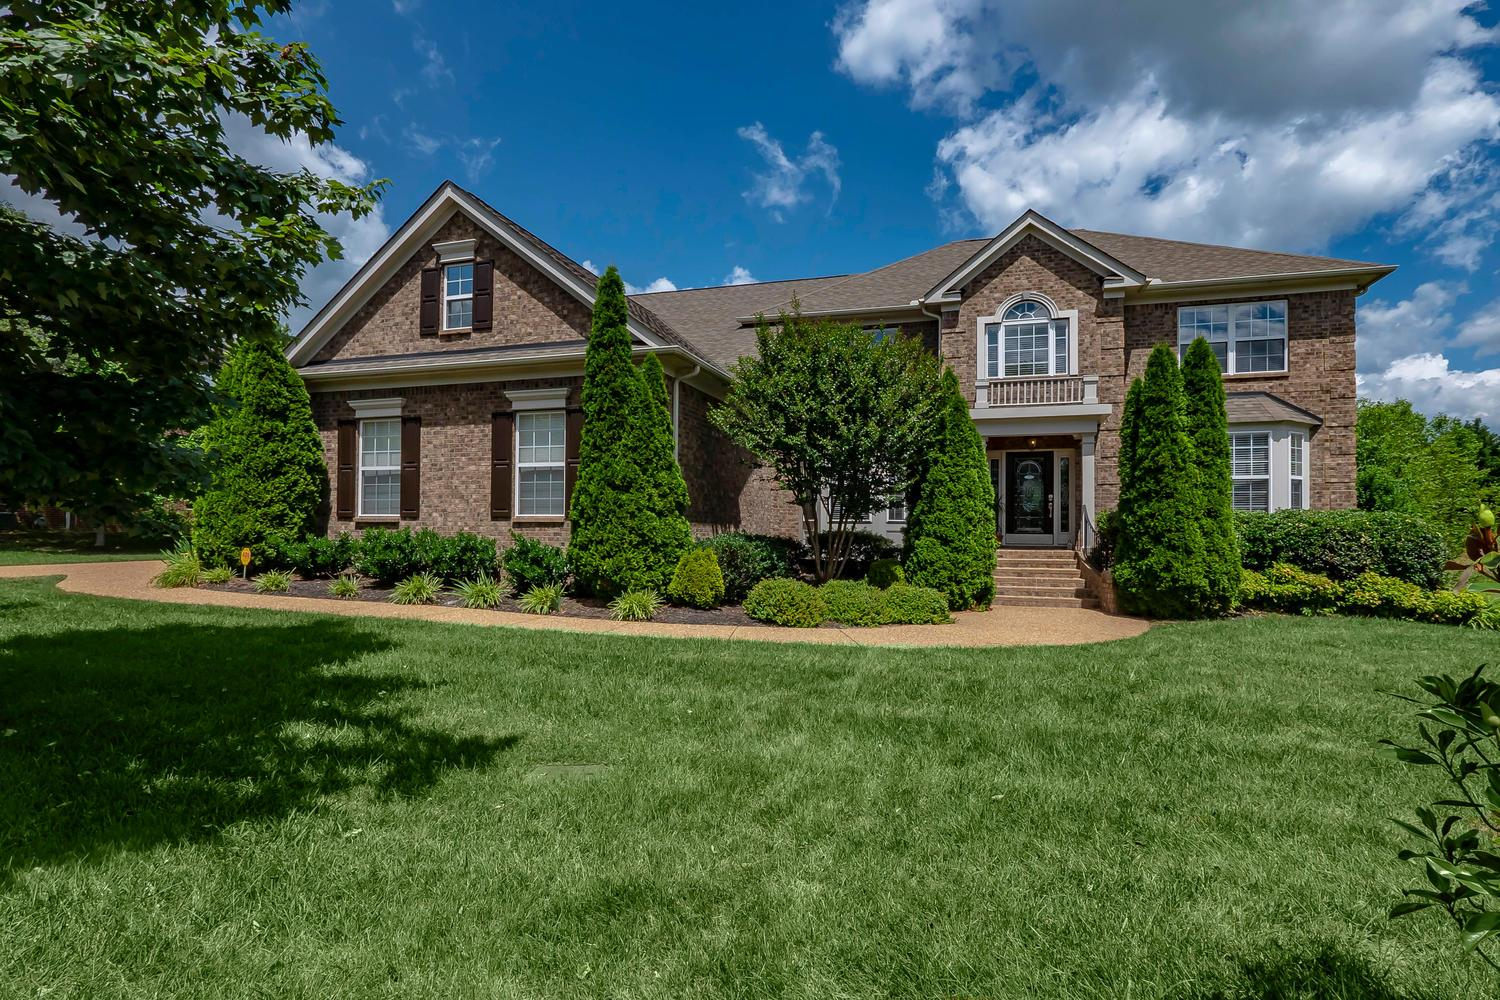 55 Timberline Dr, Bellevue, Tennessee